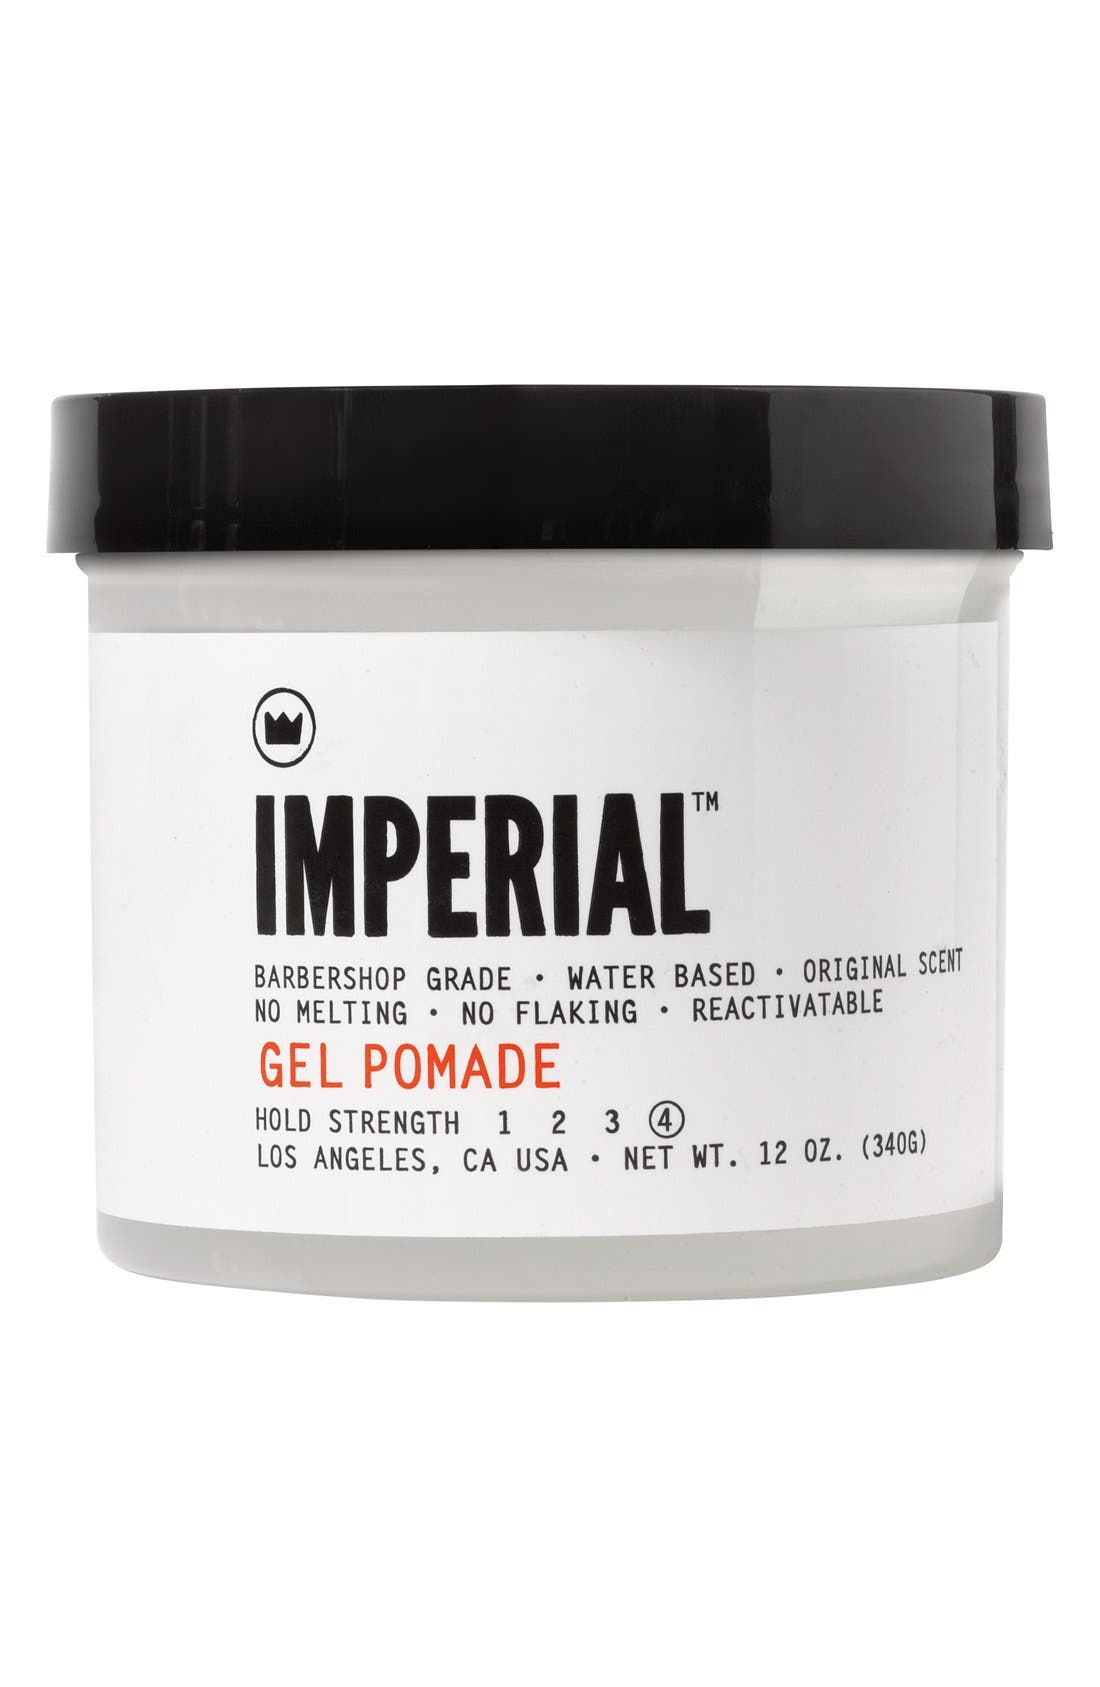 Imperial Barber Grade Products™ Gel Pomade